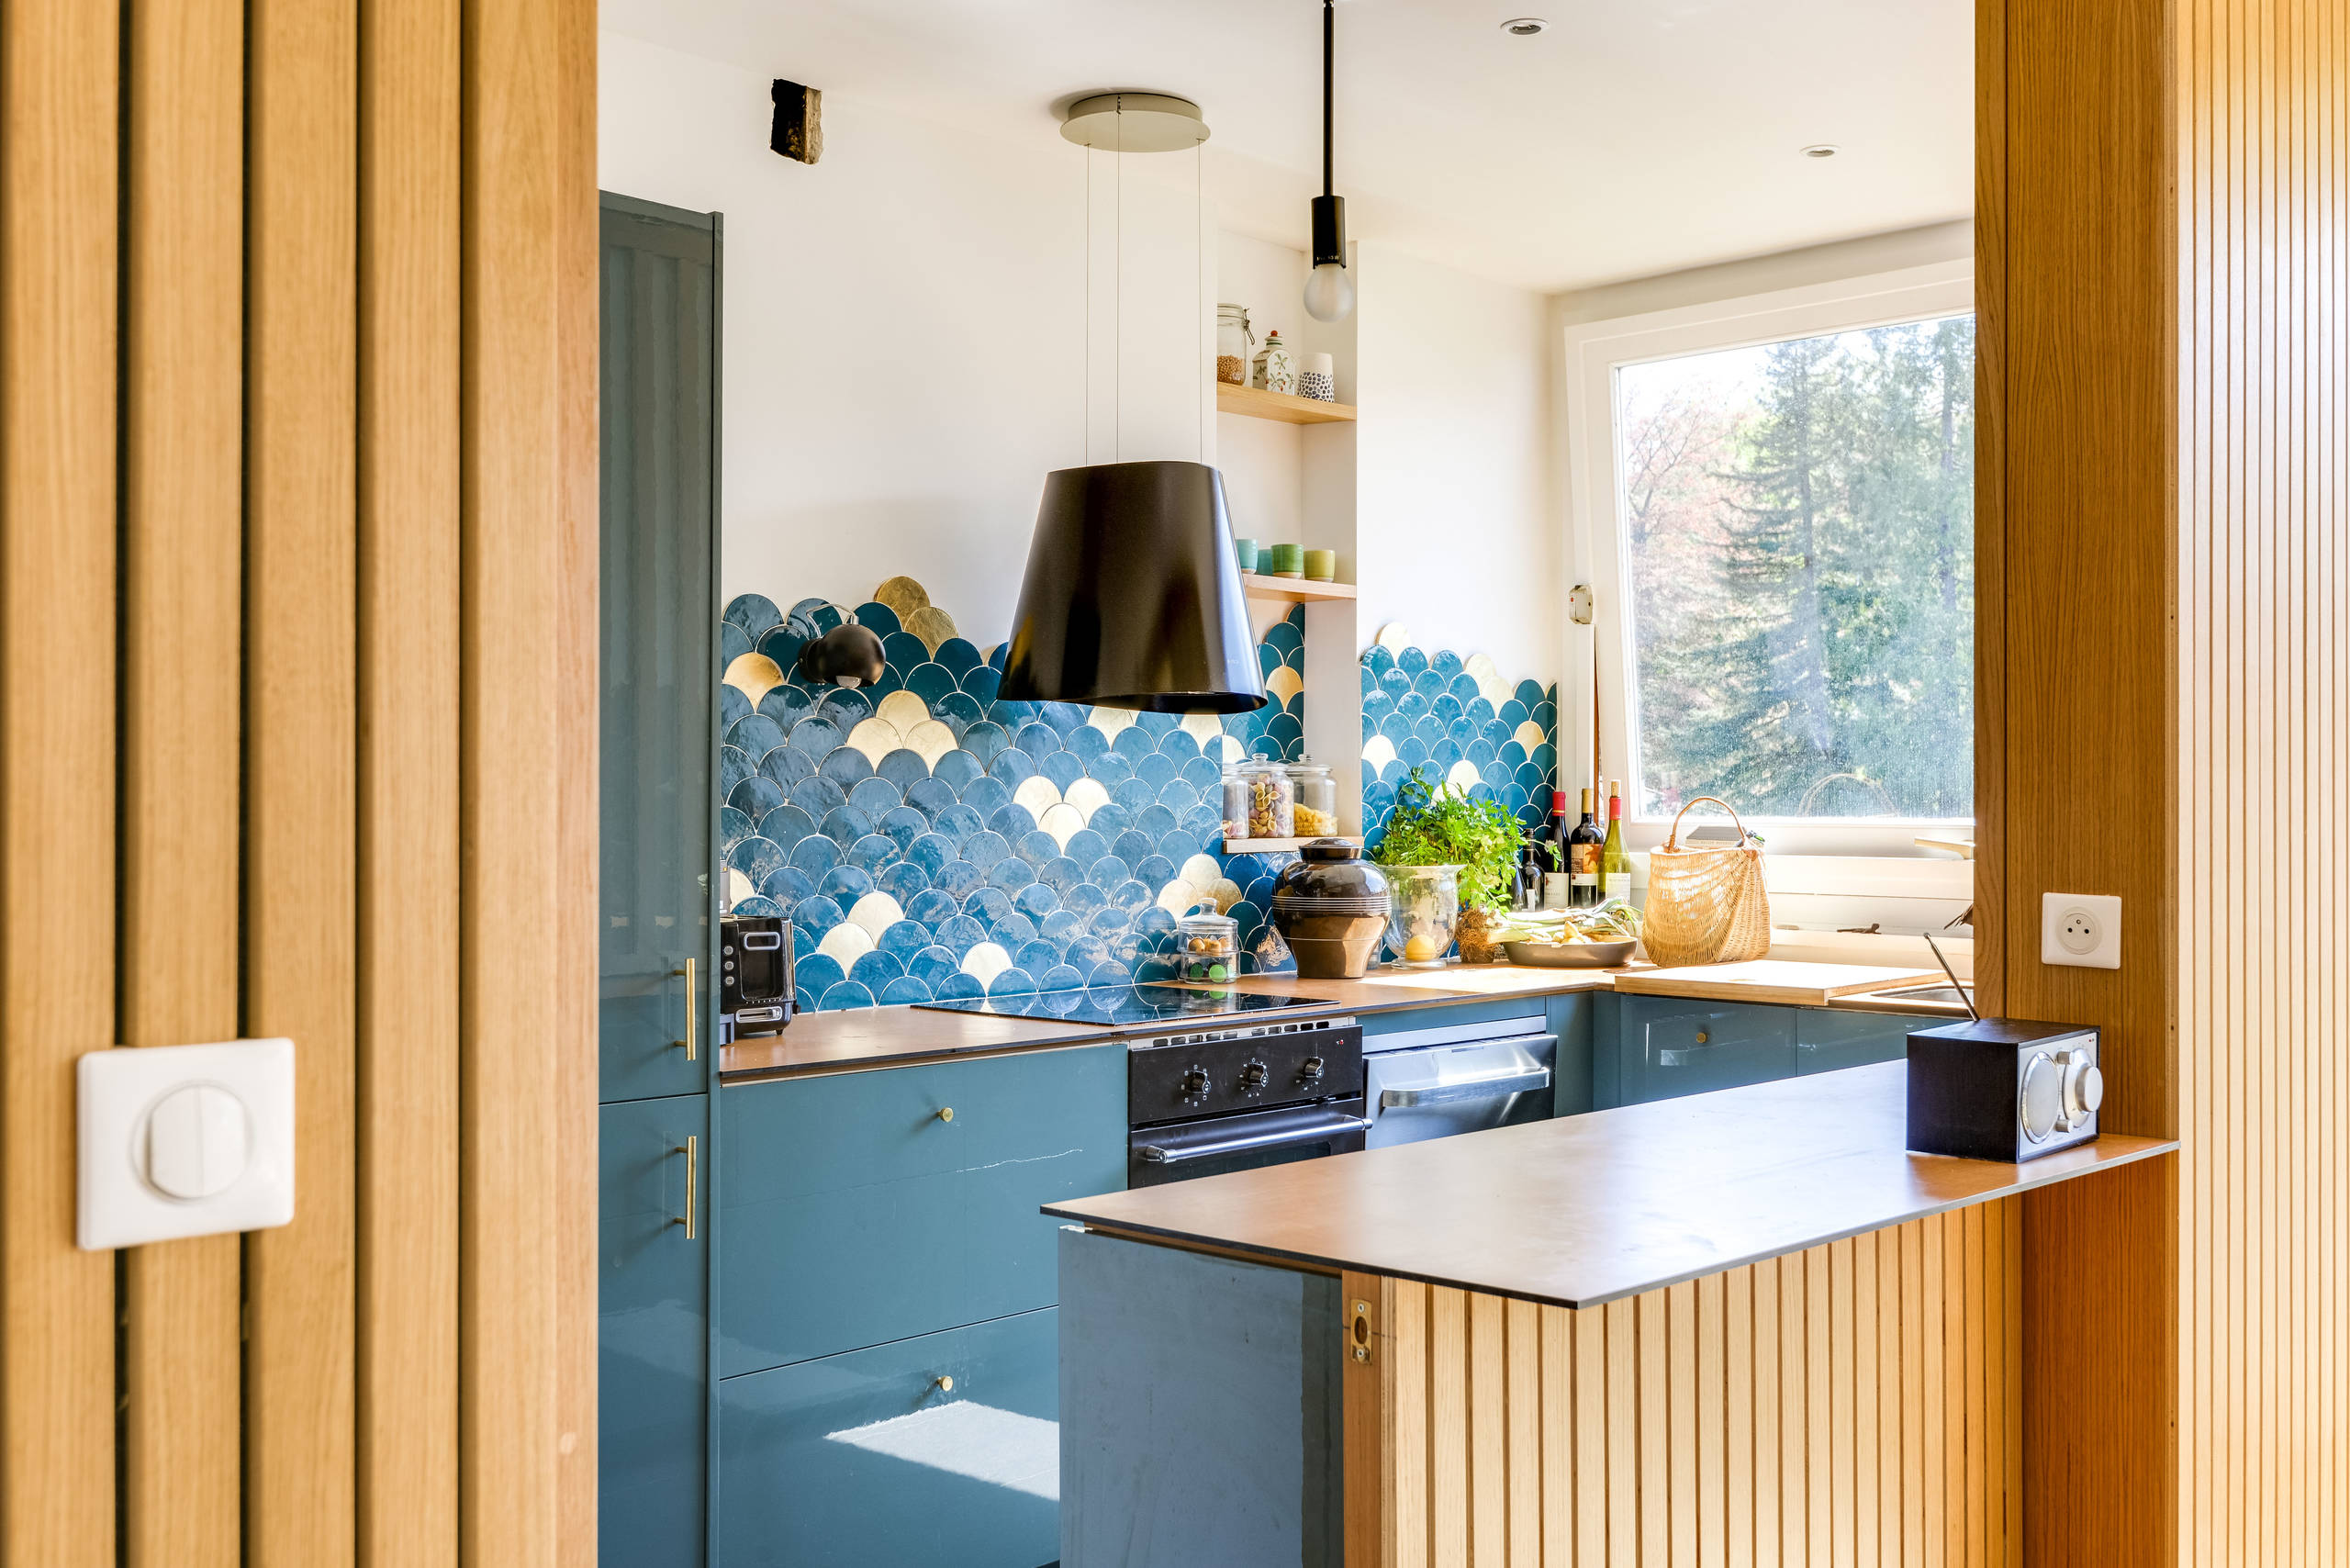 75 Beautiful Kitchen With Blue Cabinets And Laminate Countertops Pictures Ideas November 2020 Houzz